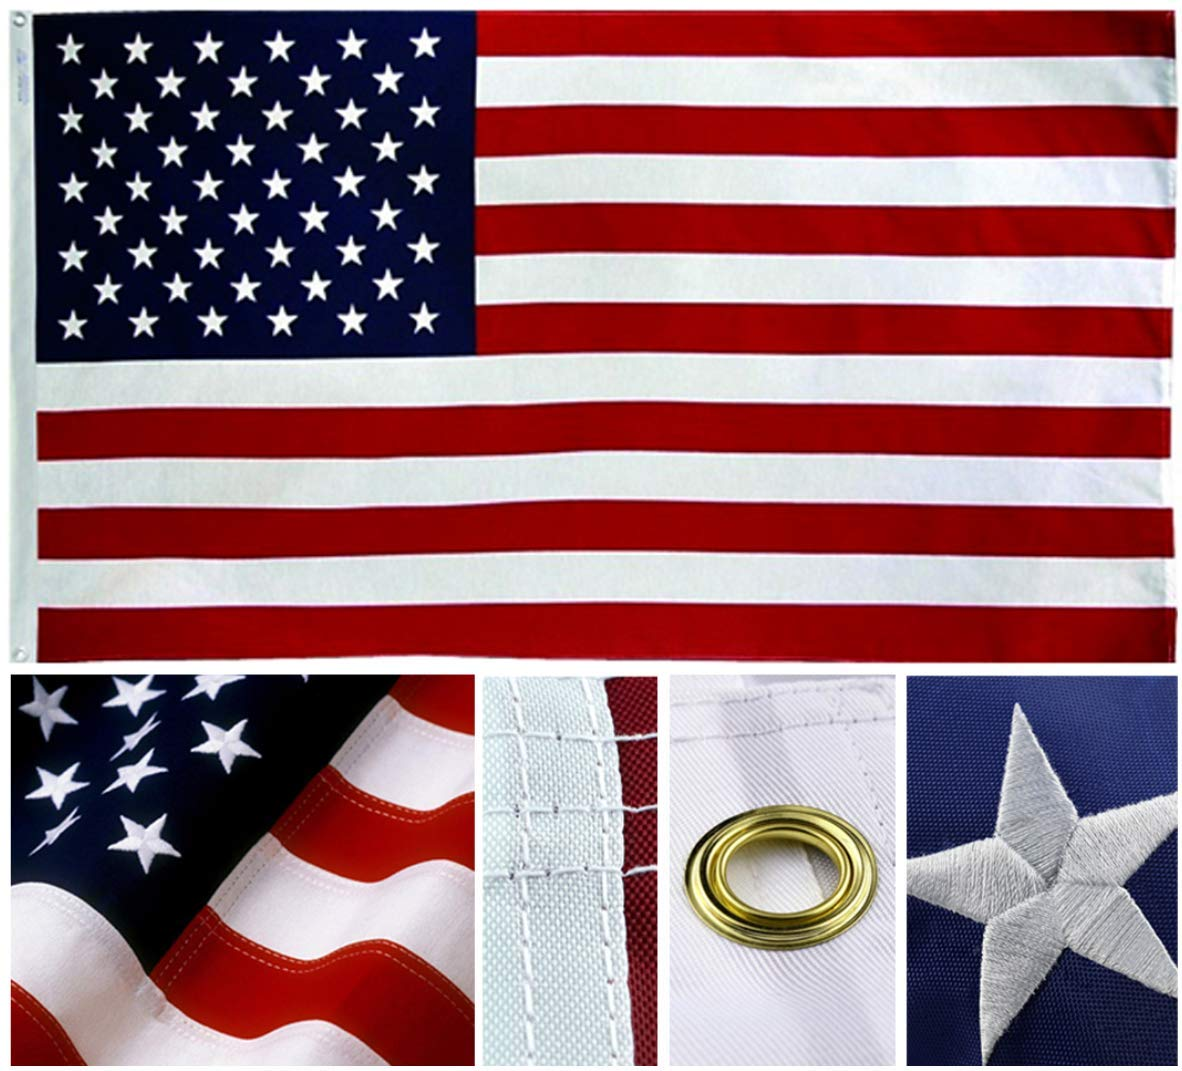 All Hardware Accessories Included Gong Home American Flag and Pole Kits 6 ft Flagpole + 3x5 ft Poly Flag